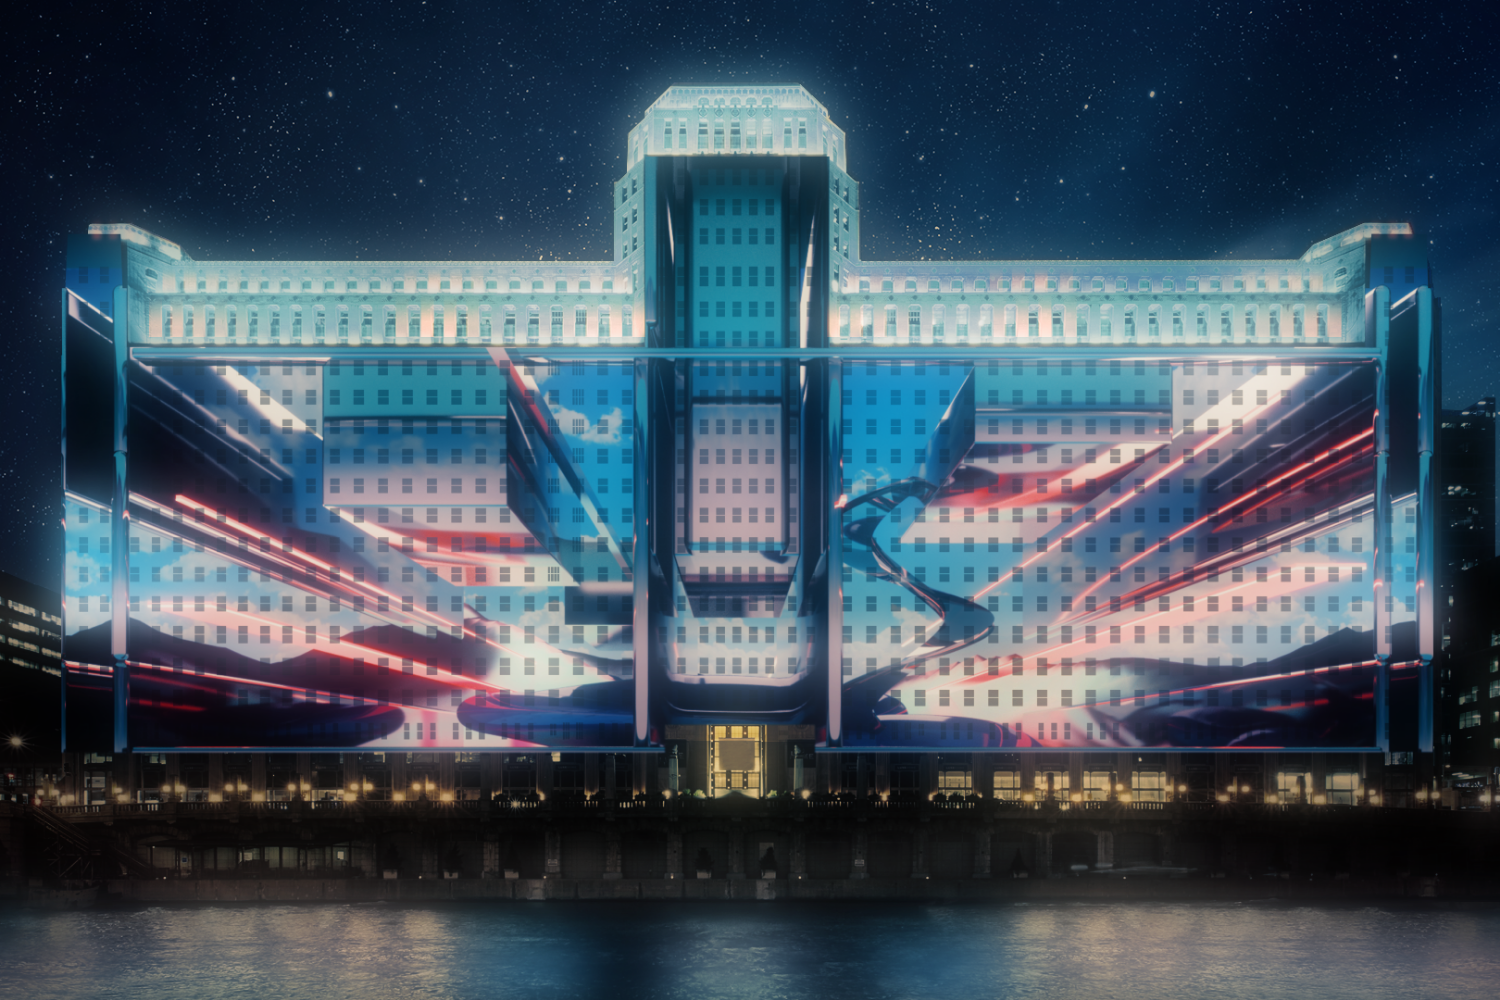 The largest digital art projection in the world is coming to Chicago